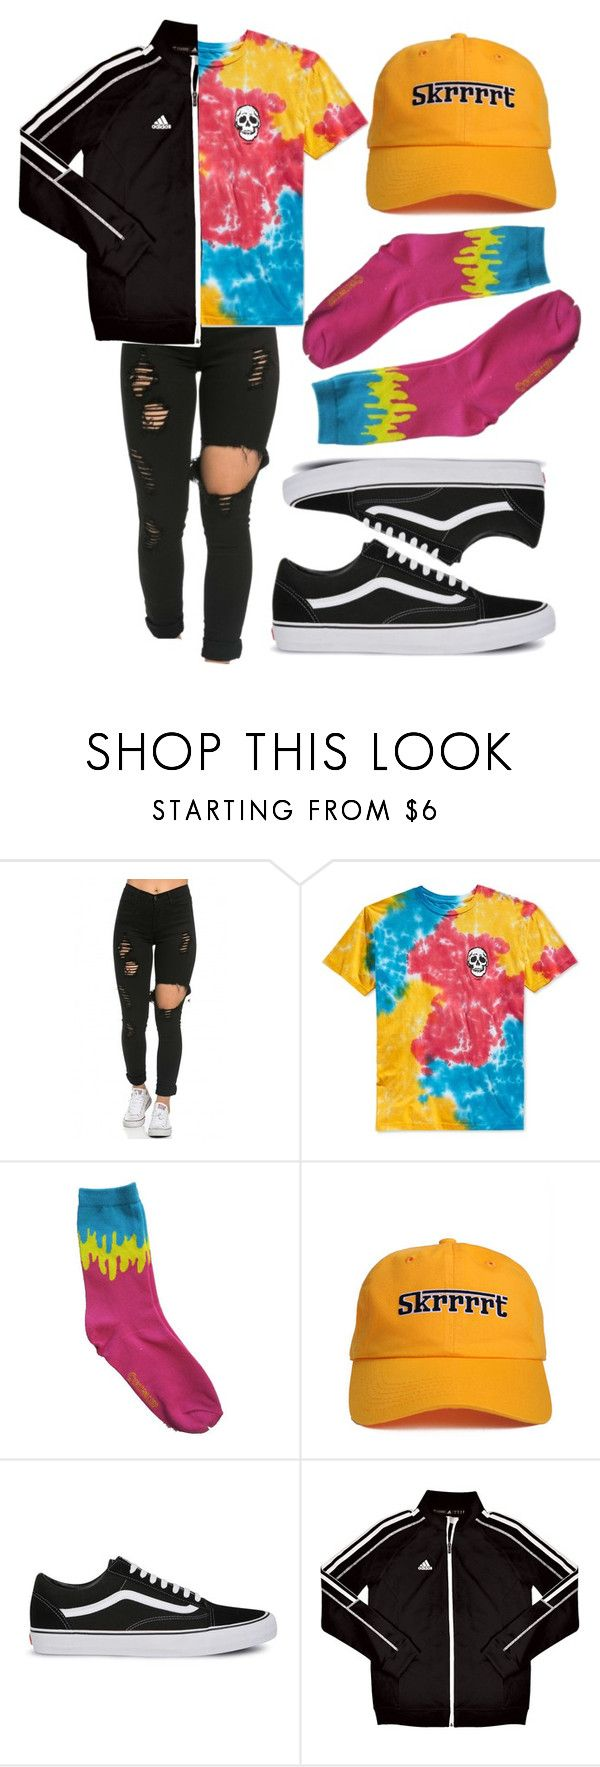 """$chool."" by l0vekennedyy ❤ liked on Polyvore featuring Neff, Vans and adidas"